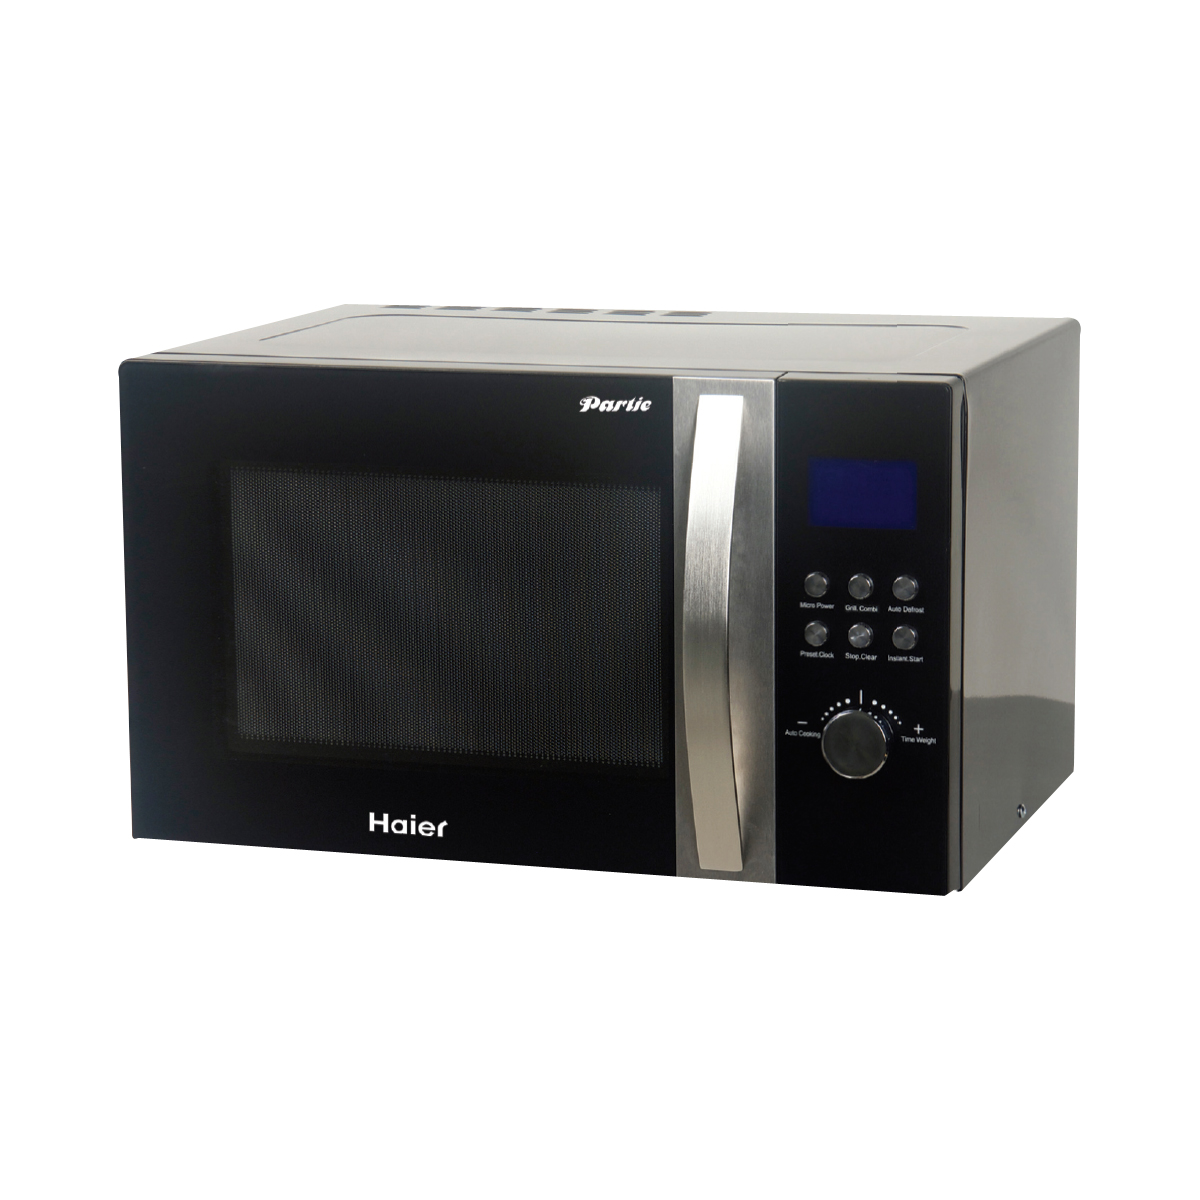 Haier Convection Microwave Oven Hil2810egcb Image